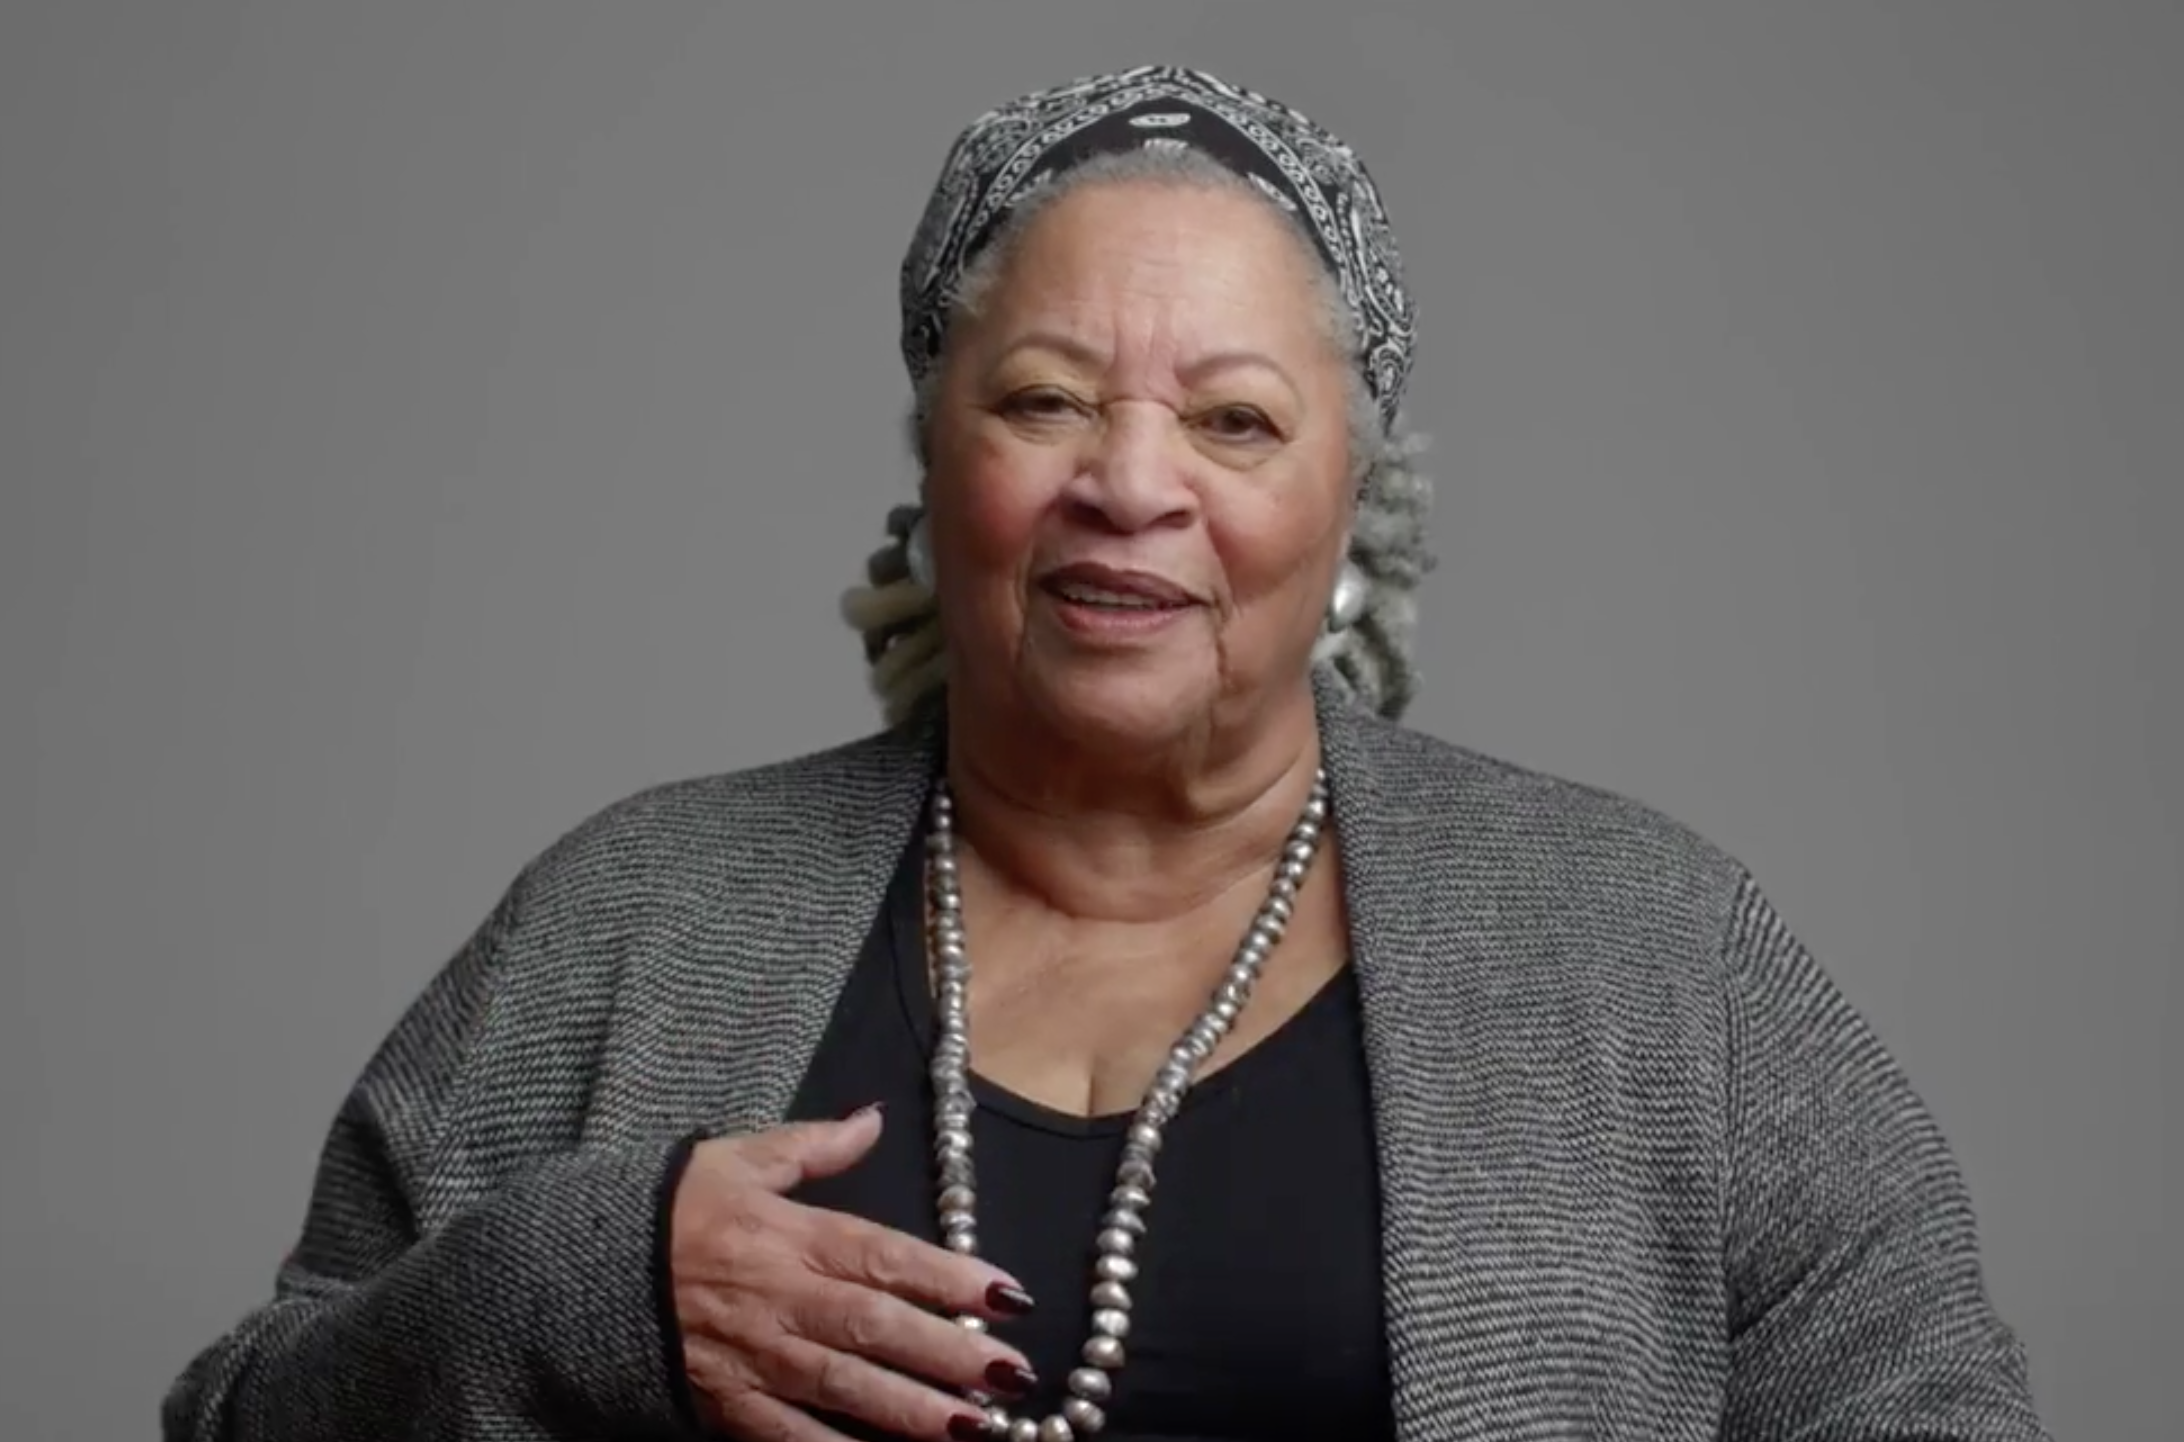 A still of Toni Morrison smiling from the documentary Toni Morrison: The Pieces I Am